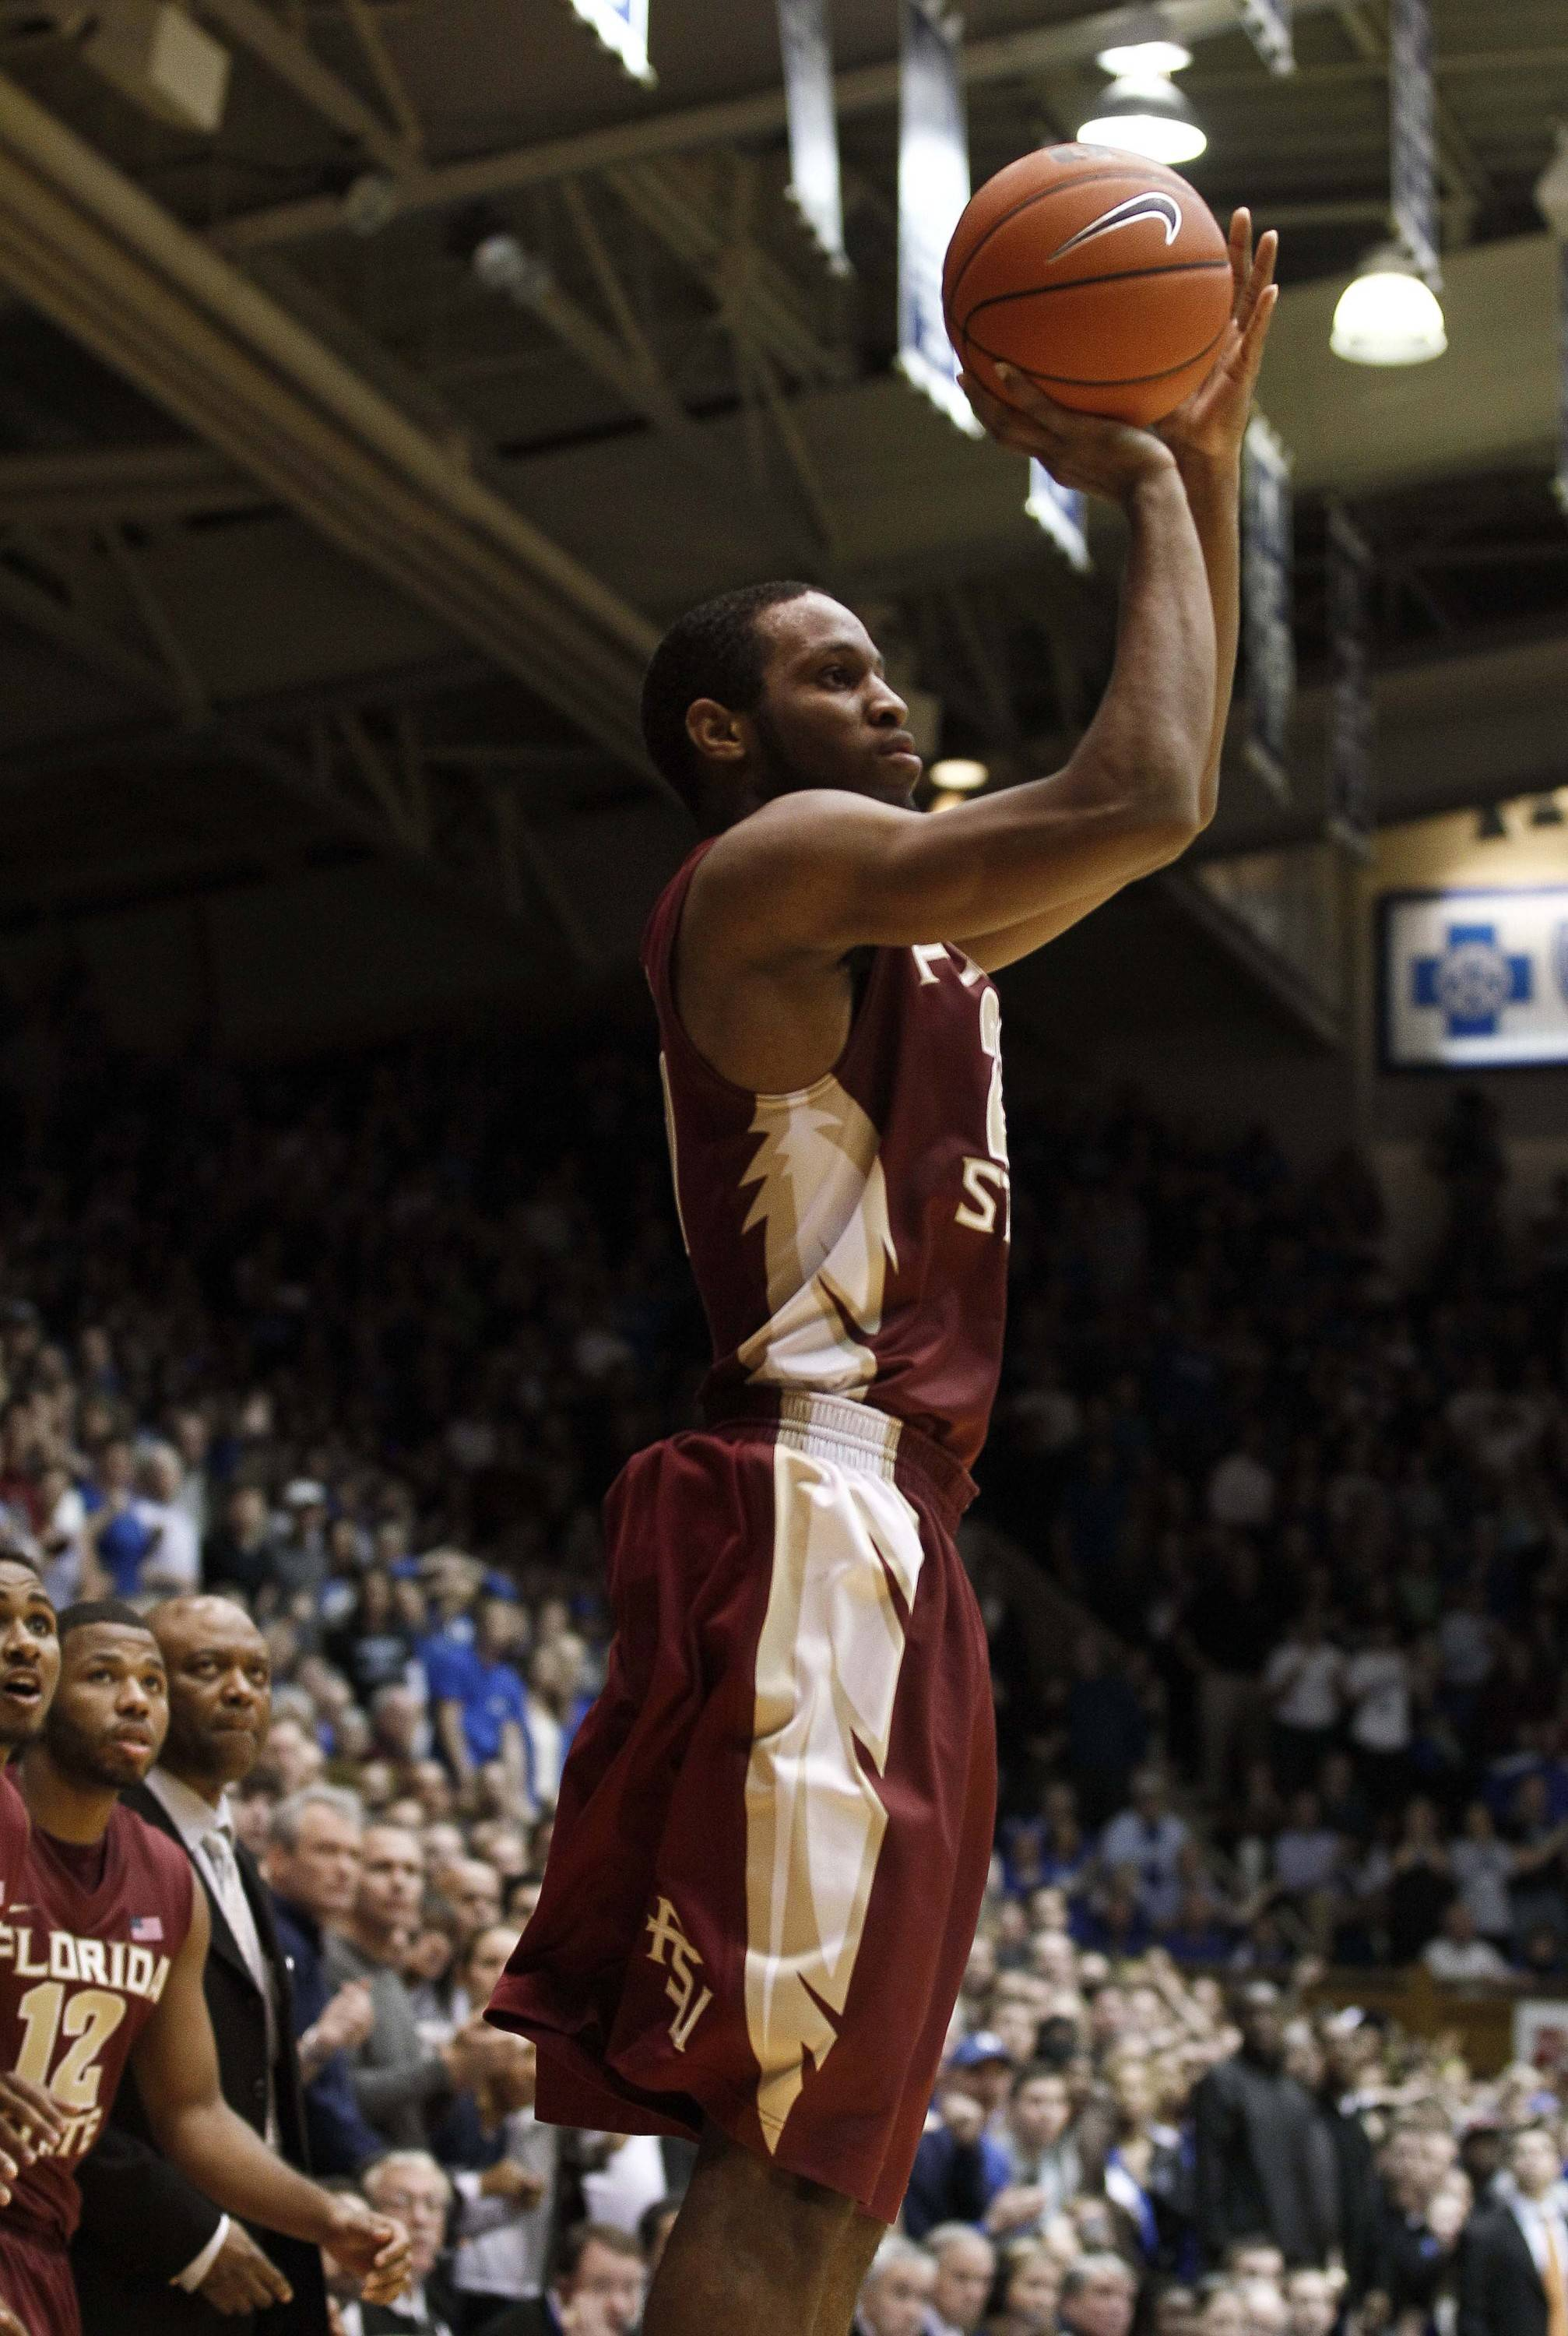 Florida State's Michael Snaer shoots the game-winning basket during the second half. (AP Photo/Gerry Broome)